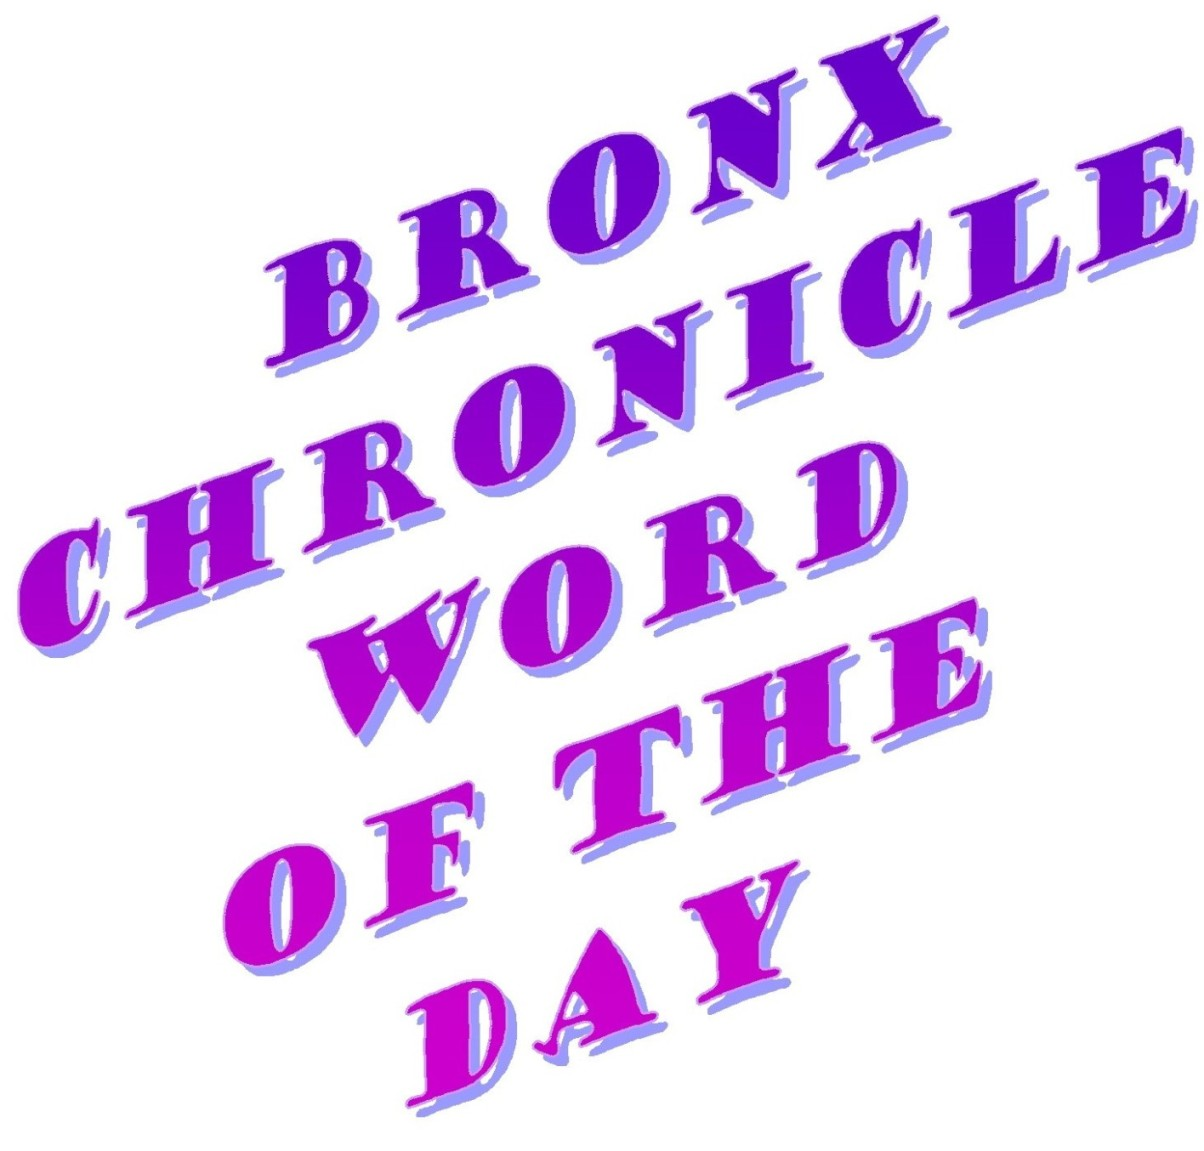 word-of-the-day-00111